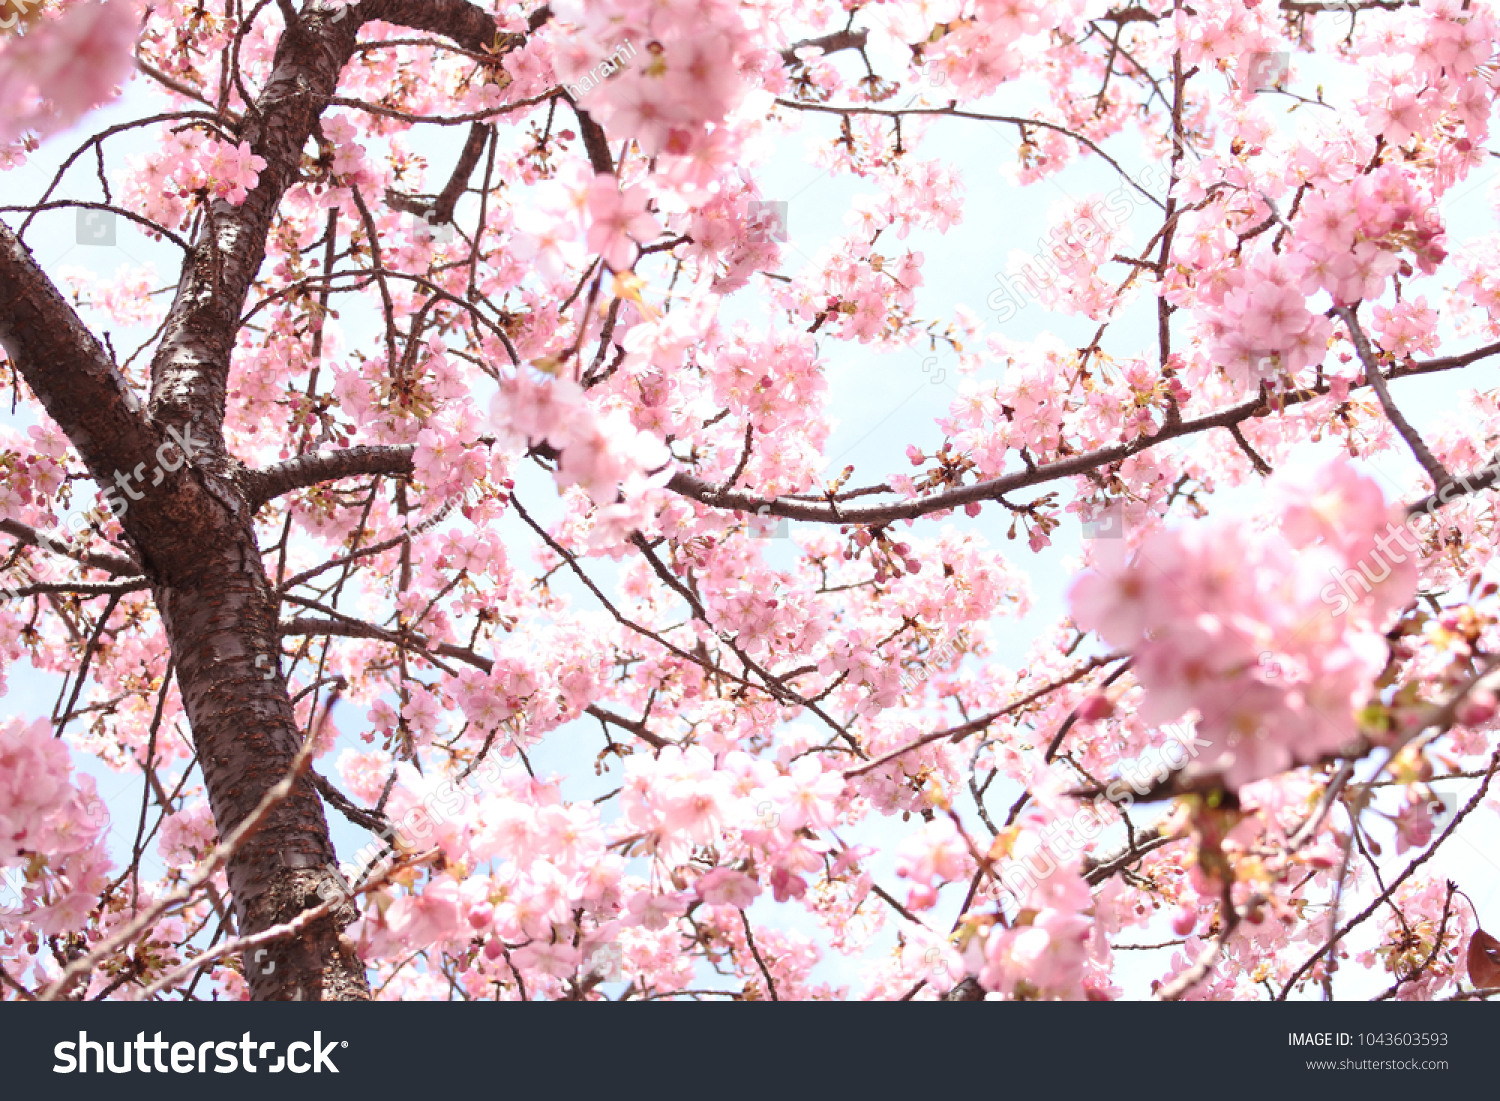 Sakura Cherry Blossom Season In Japan Pink Spring Flower Background